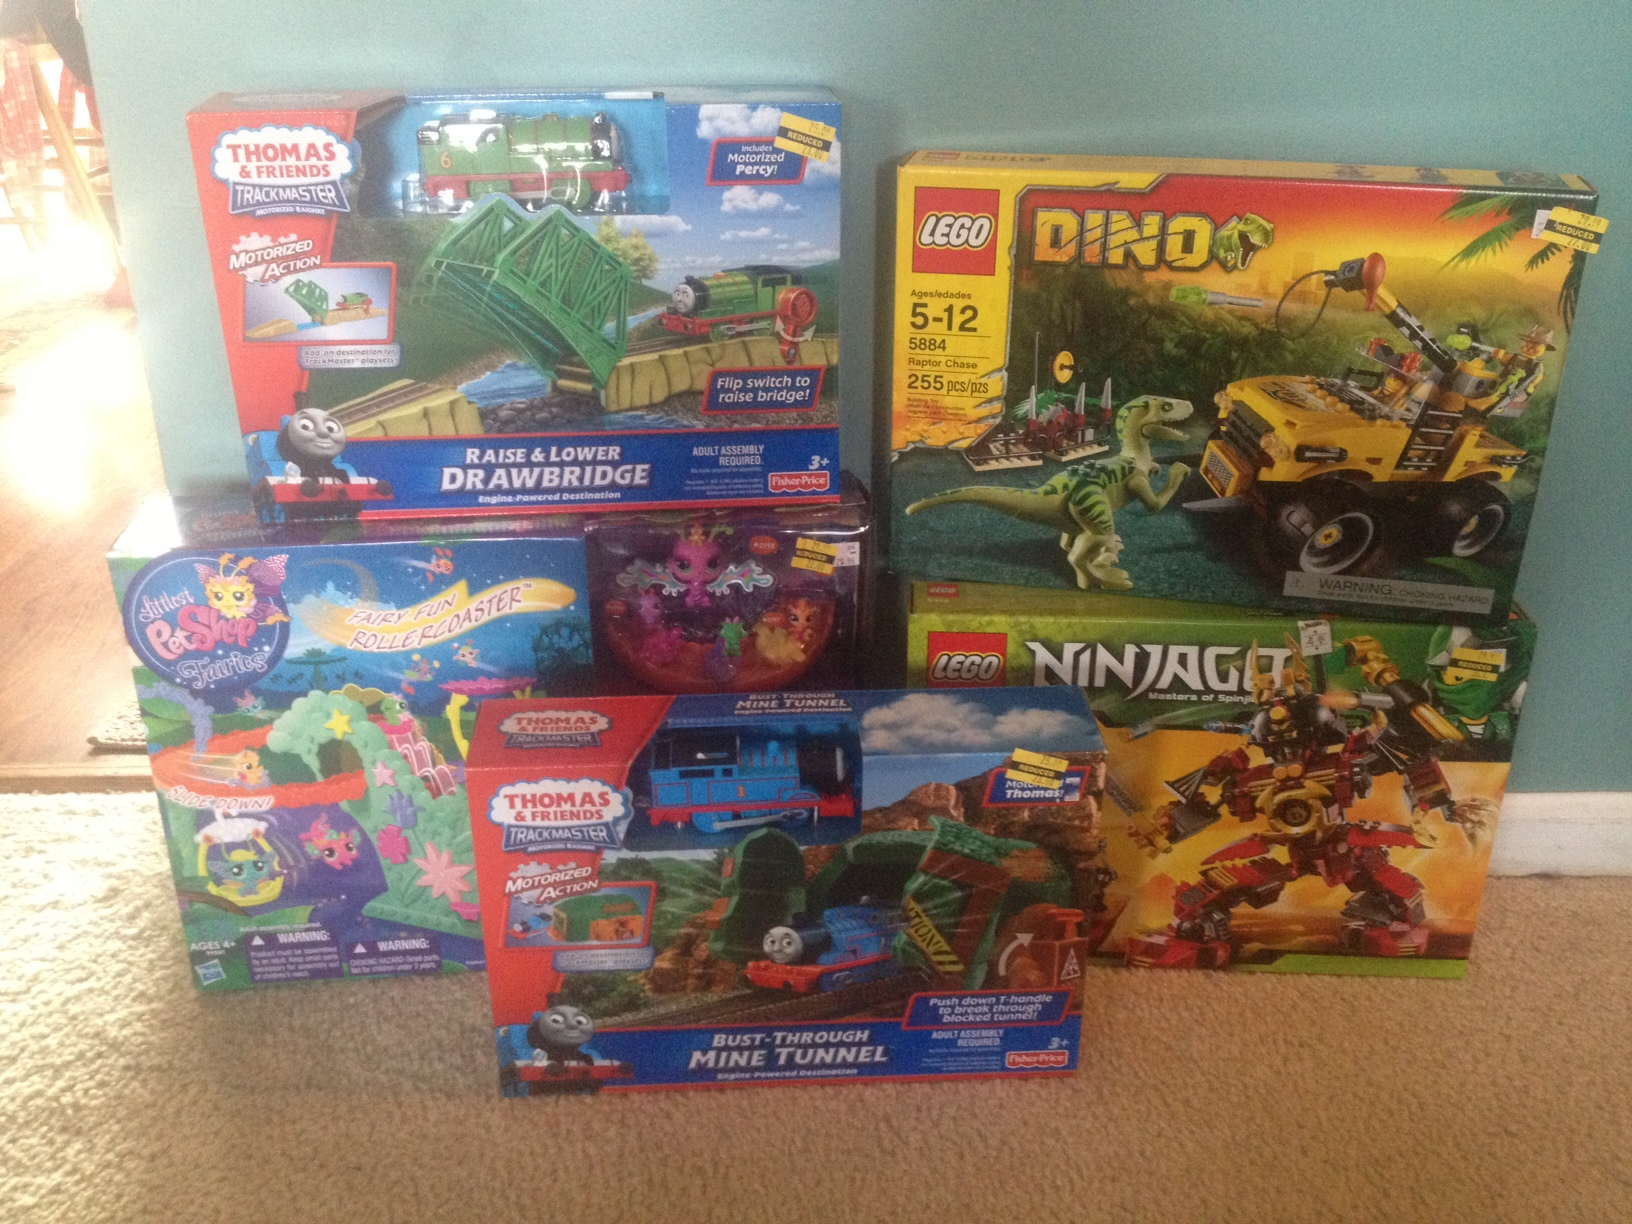 Kmart Extra 50% f Clearance Toys Deal Wise Mommy